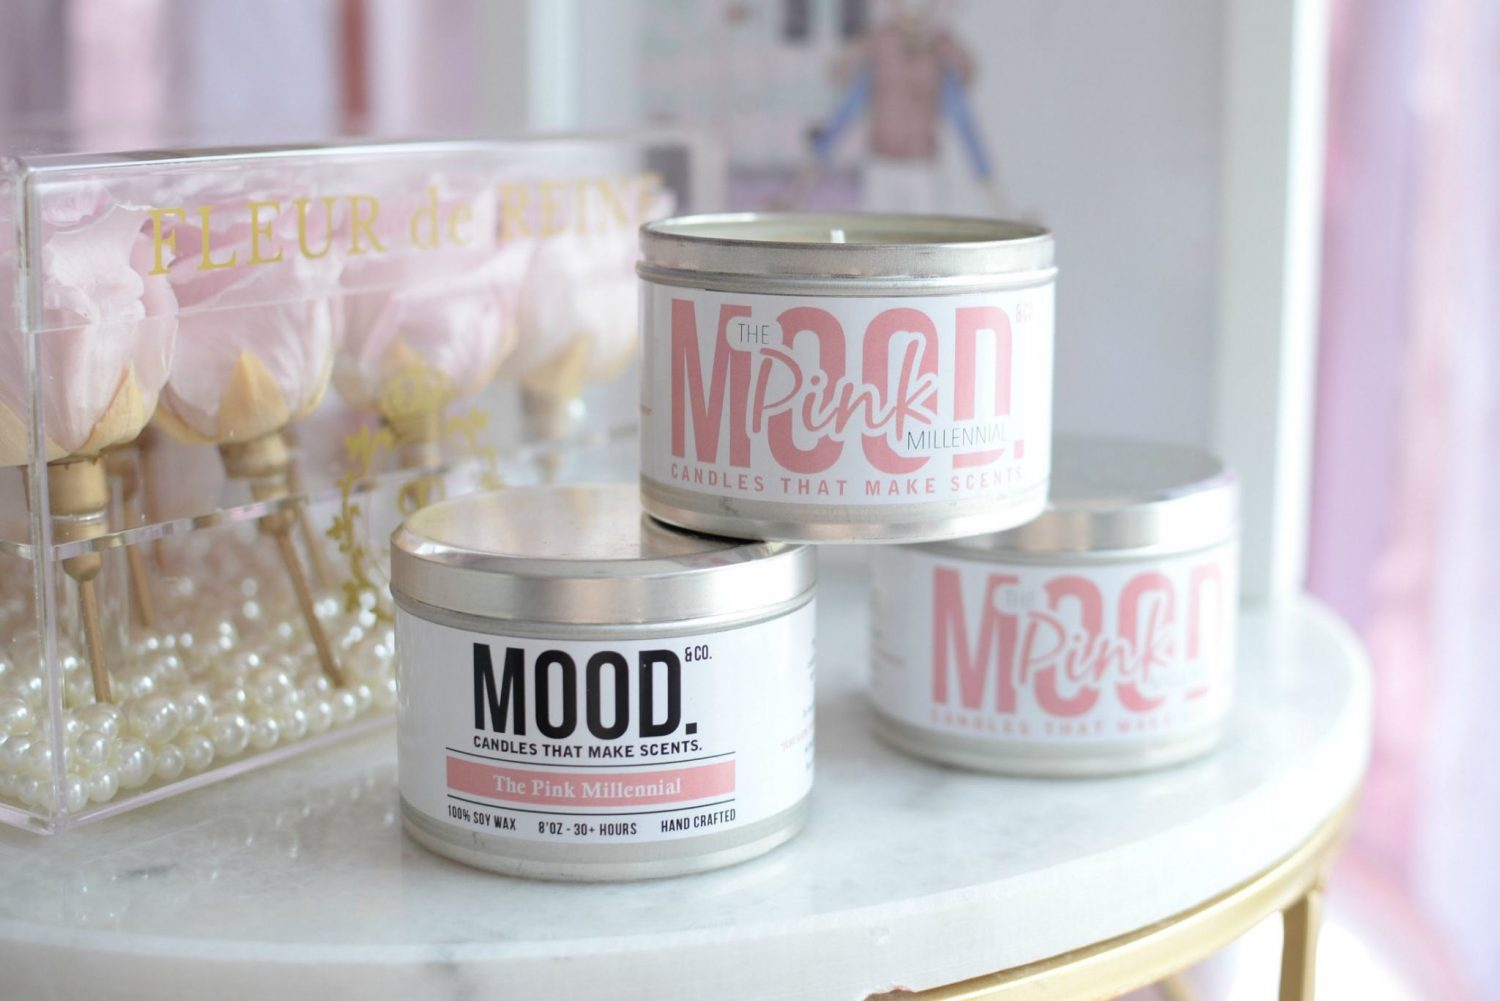 The Pink Millennial Candle made by Mood & Co. in London, ON